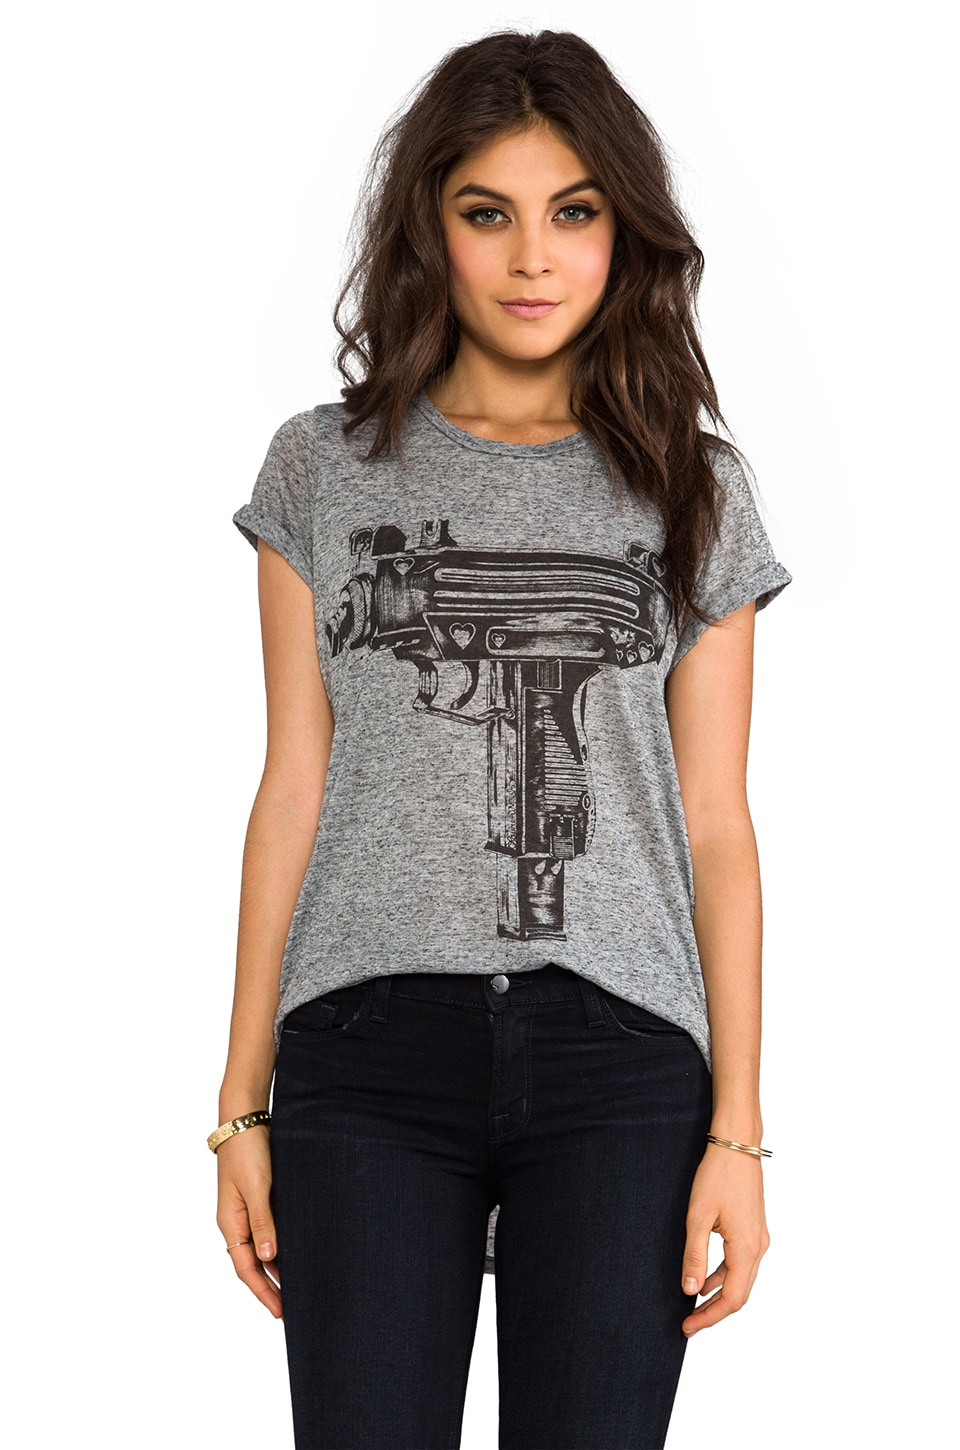 Lauren Moshi Edda Love Gun Vintage Tee in Black